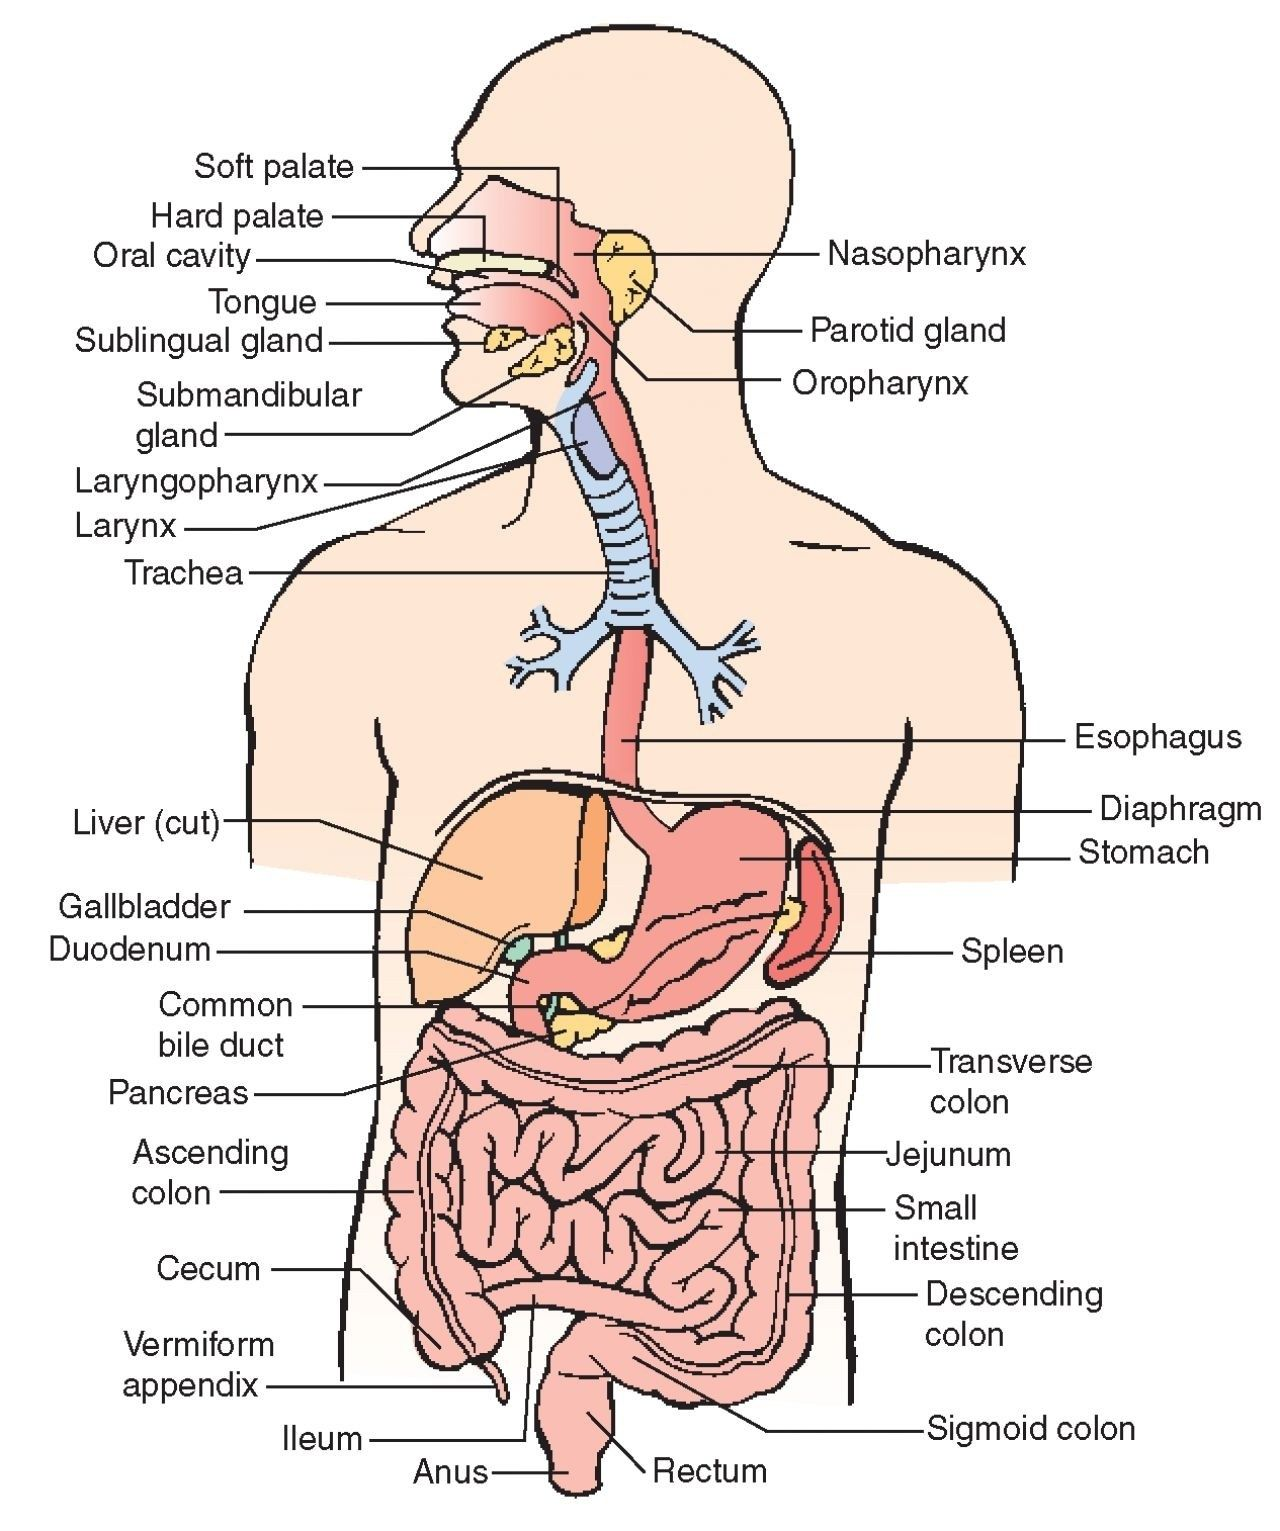 human anatomy quizlet human anatomy quizlet gallery anatomy of the Reproductive System Diagram Labeled